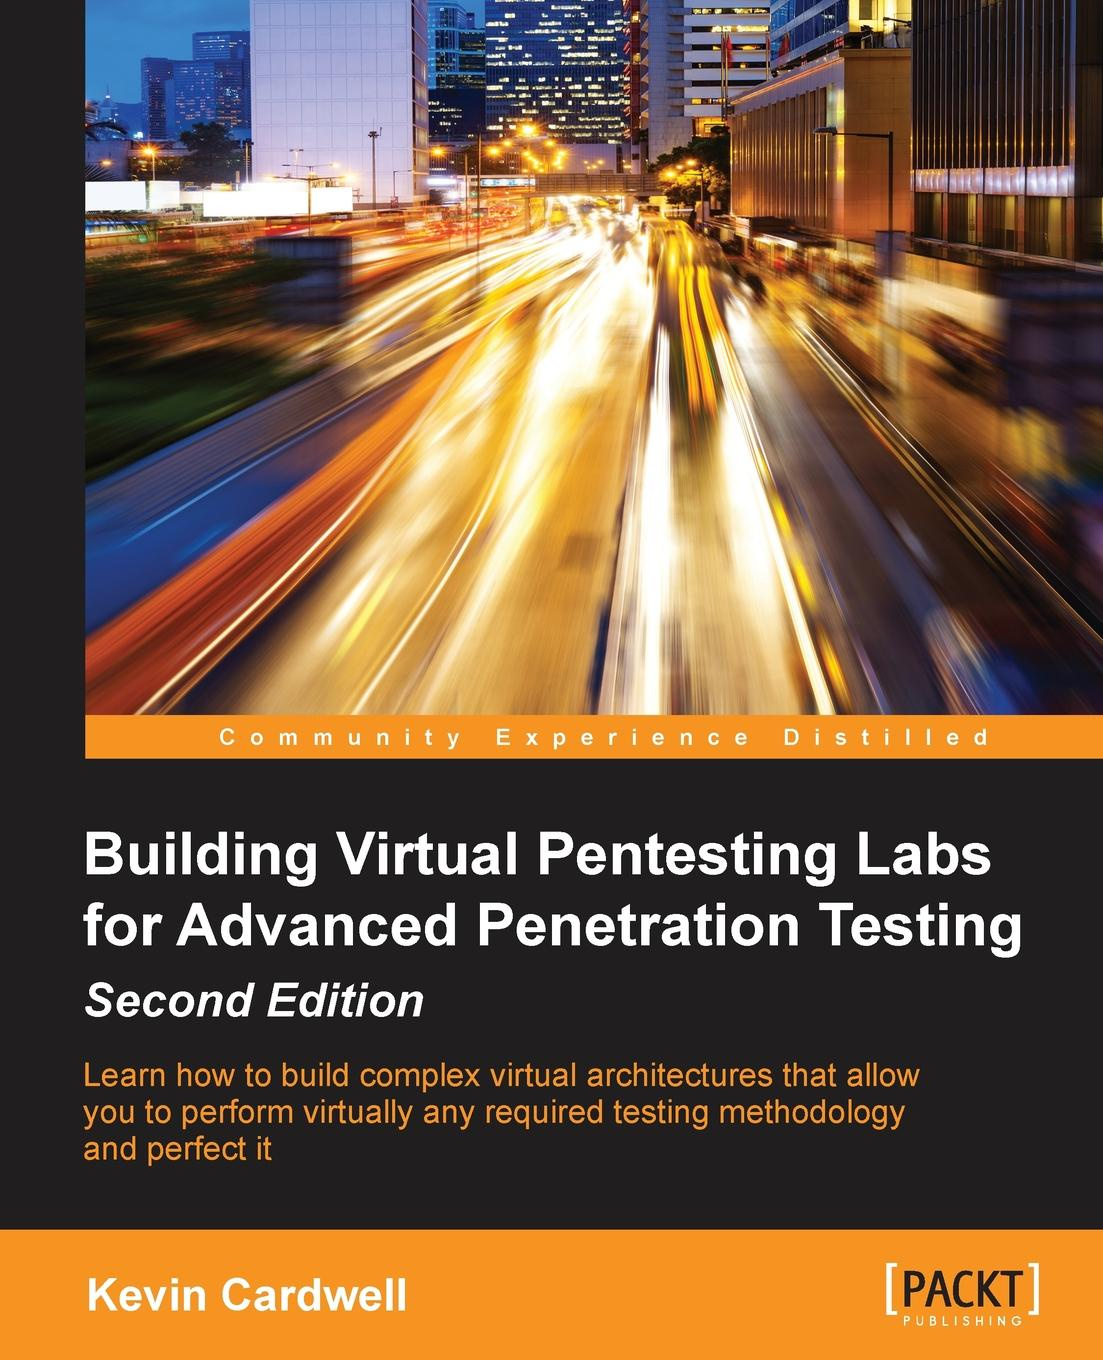 Kevin Cardwell Building Virtual Pentesting Labs for Advanced Penetration Testing, Second Edition object oriented modeling of virtual labs for control education